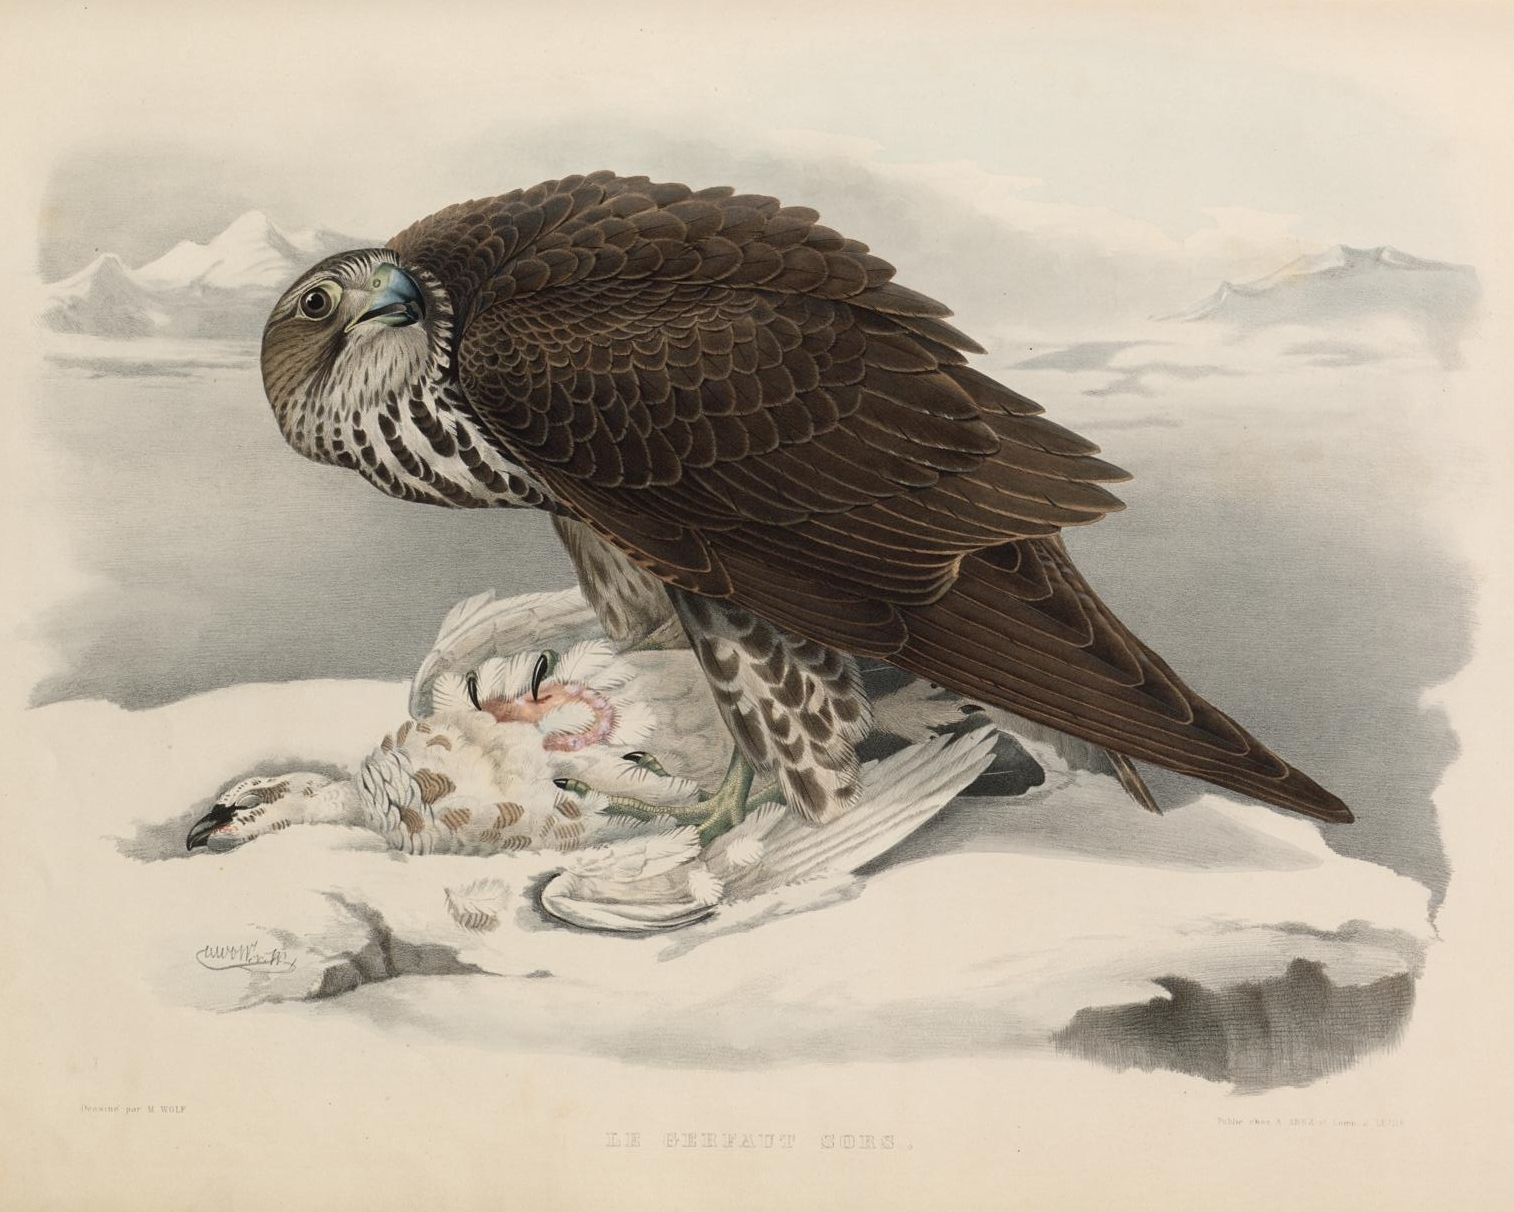 lithograph of crouched raptor